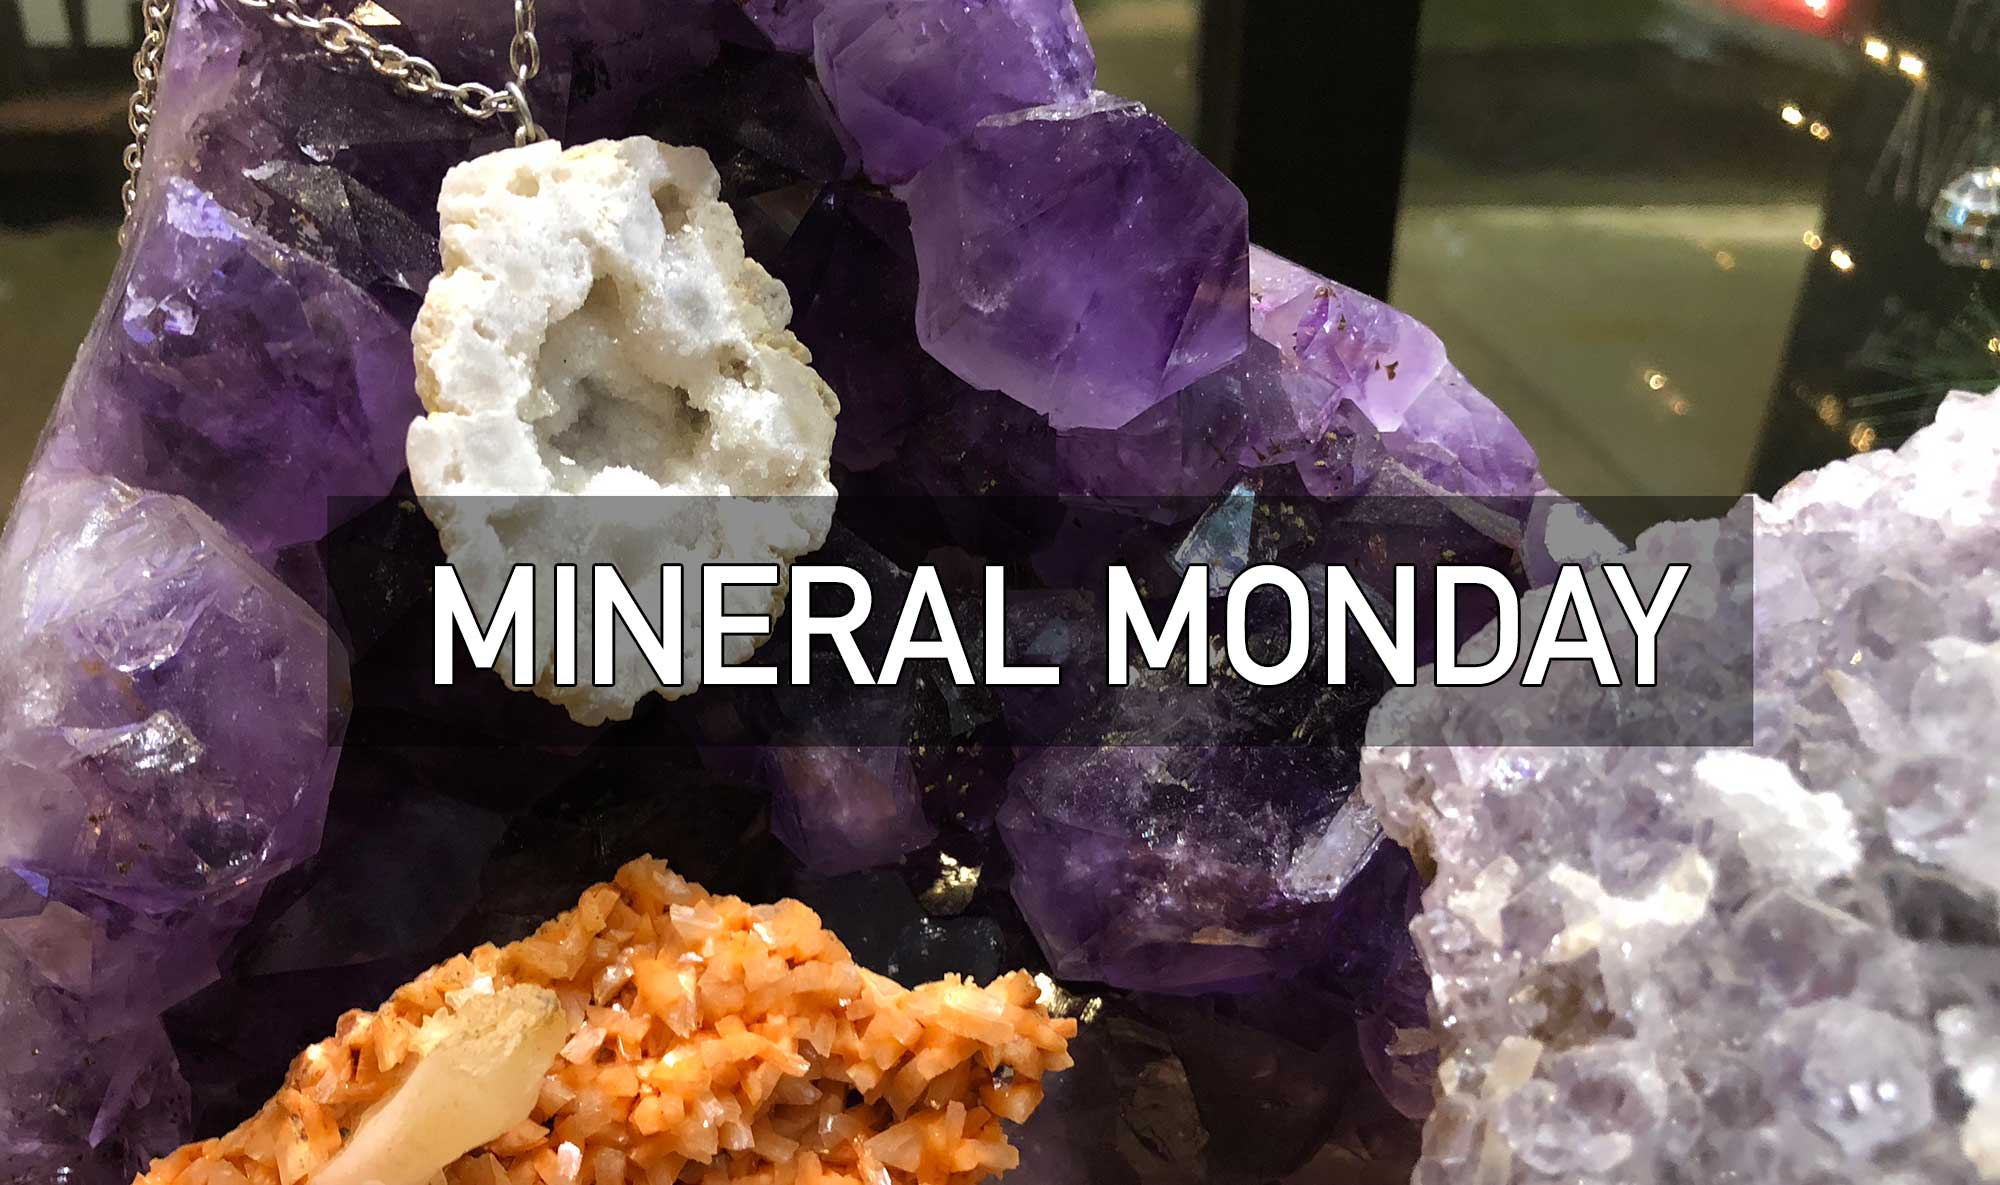 Mineral Monday facebook live, well done goods